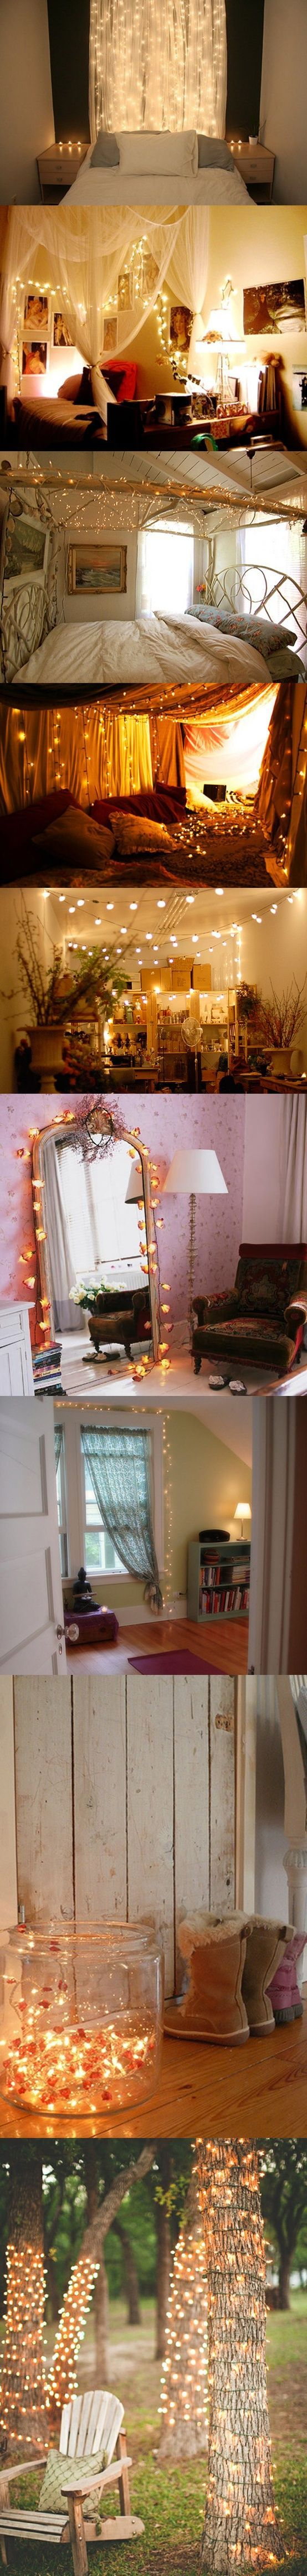 Set of the most beautiful bedrooms in #fairylights !!